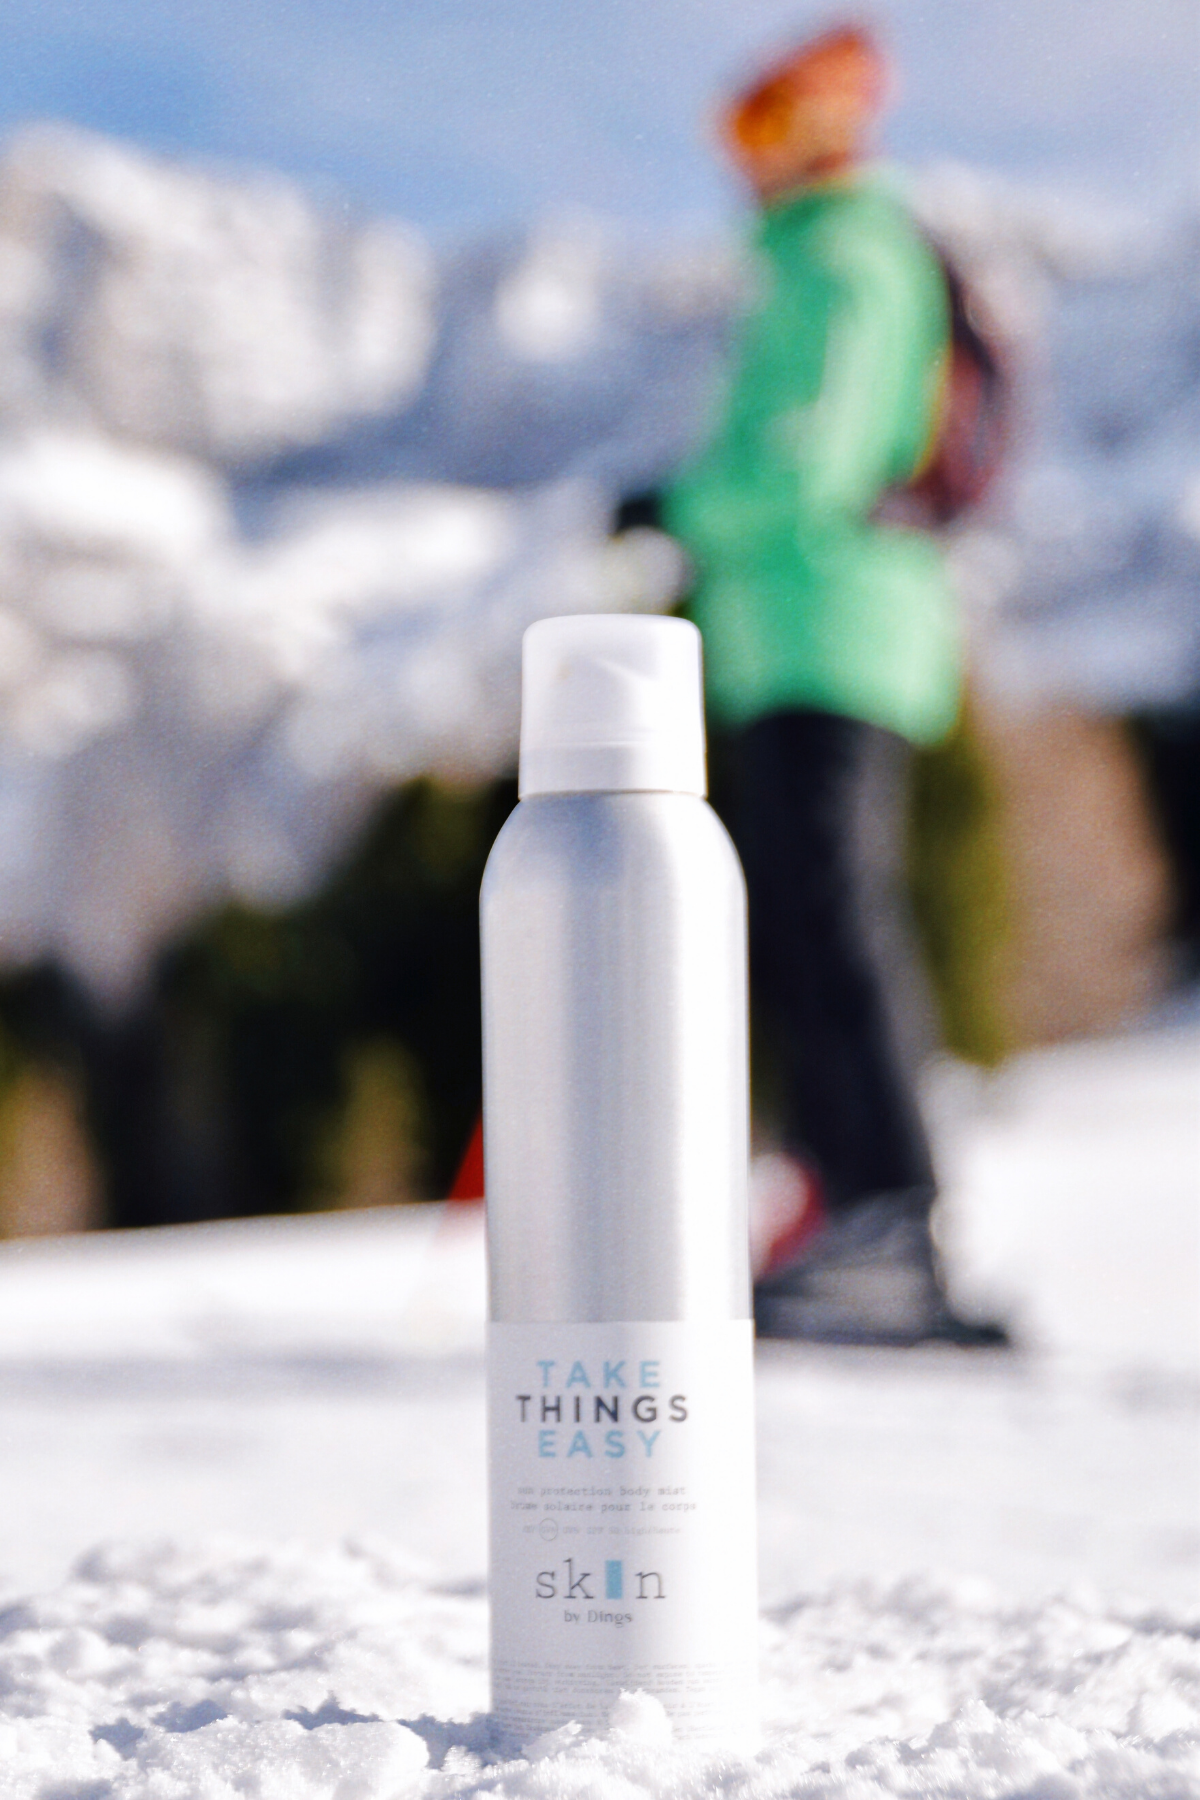 TAKE THINGS EASY - sun protection body mist SPF 30-3